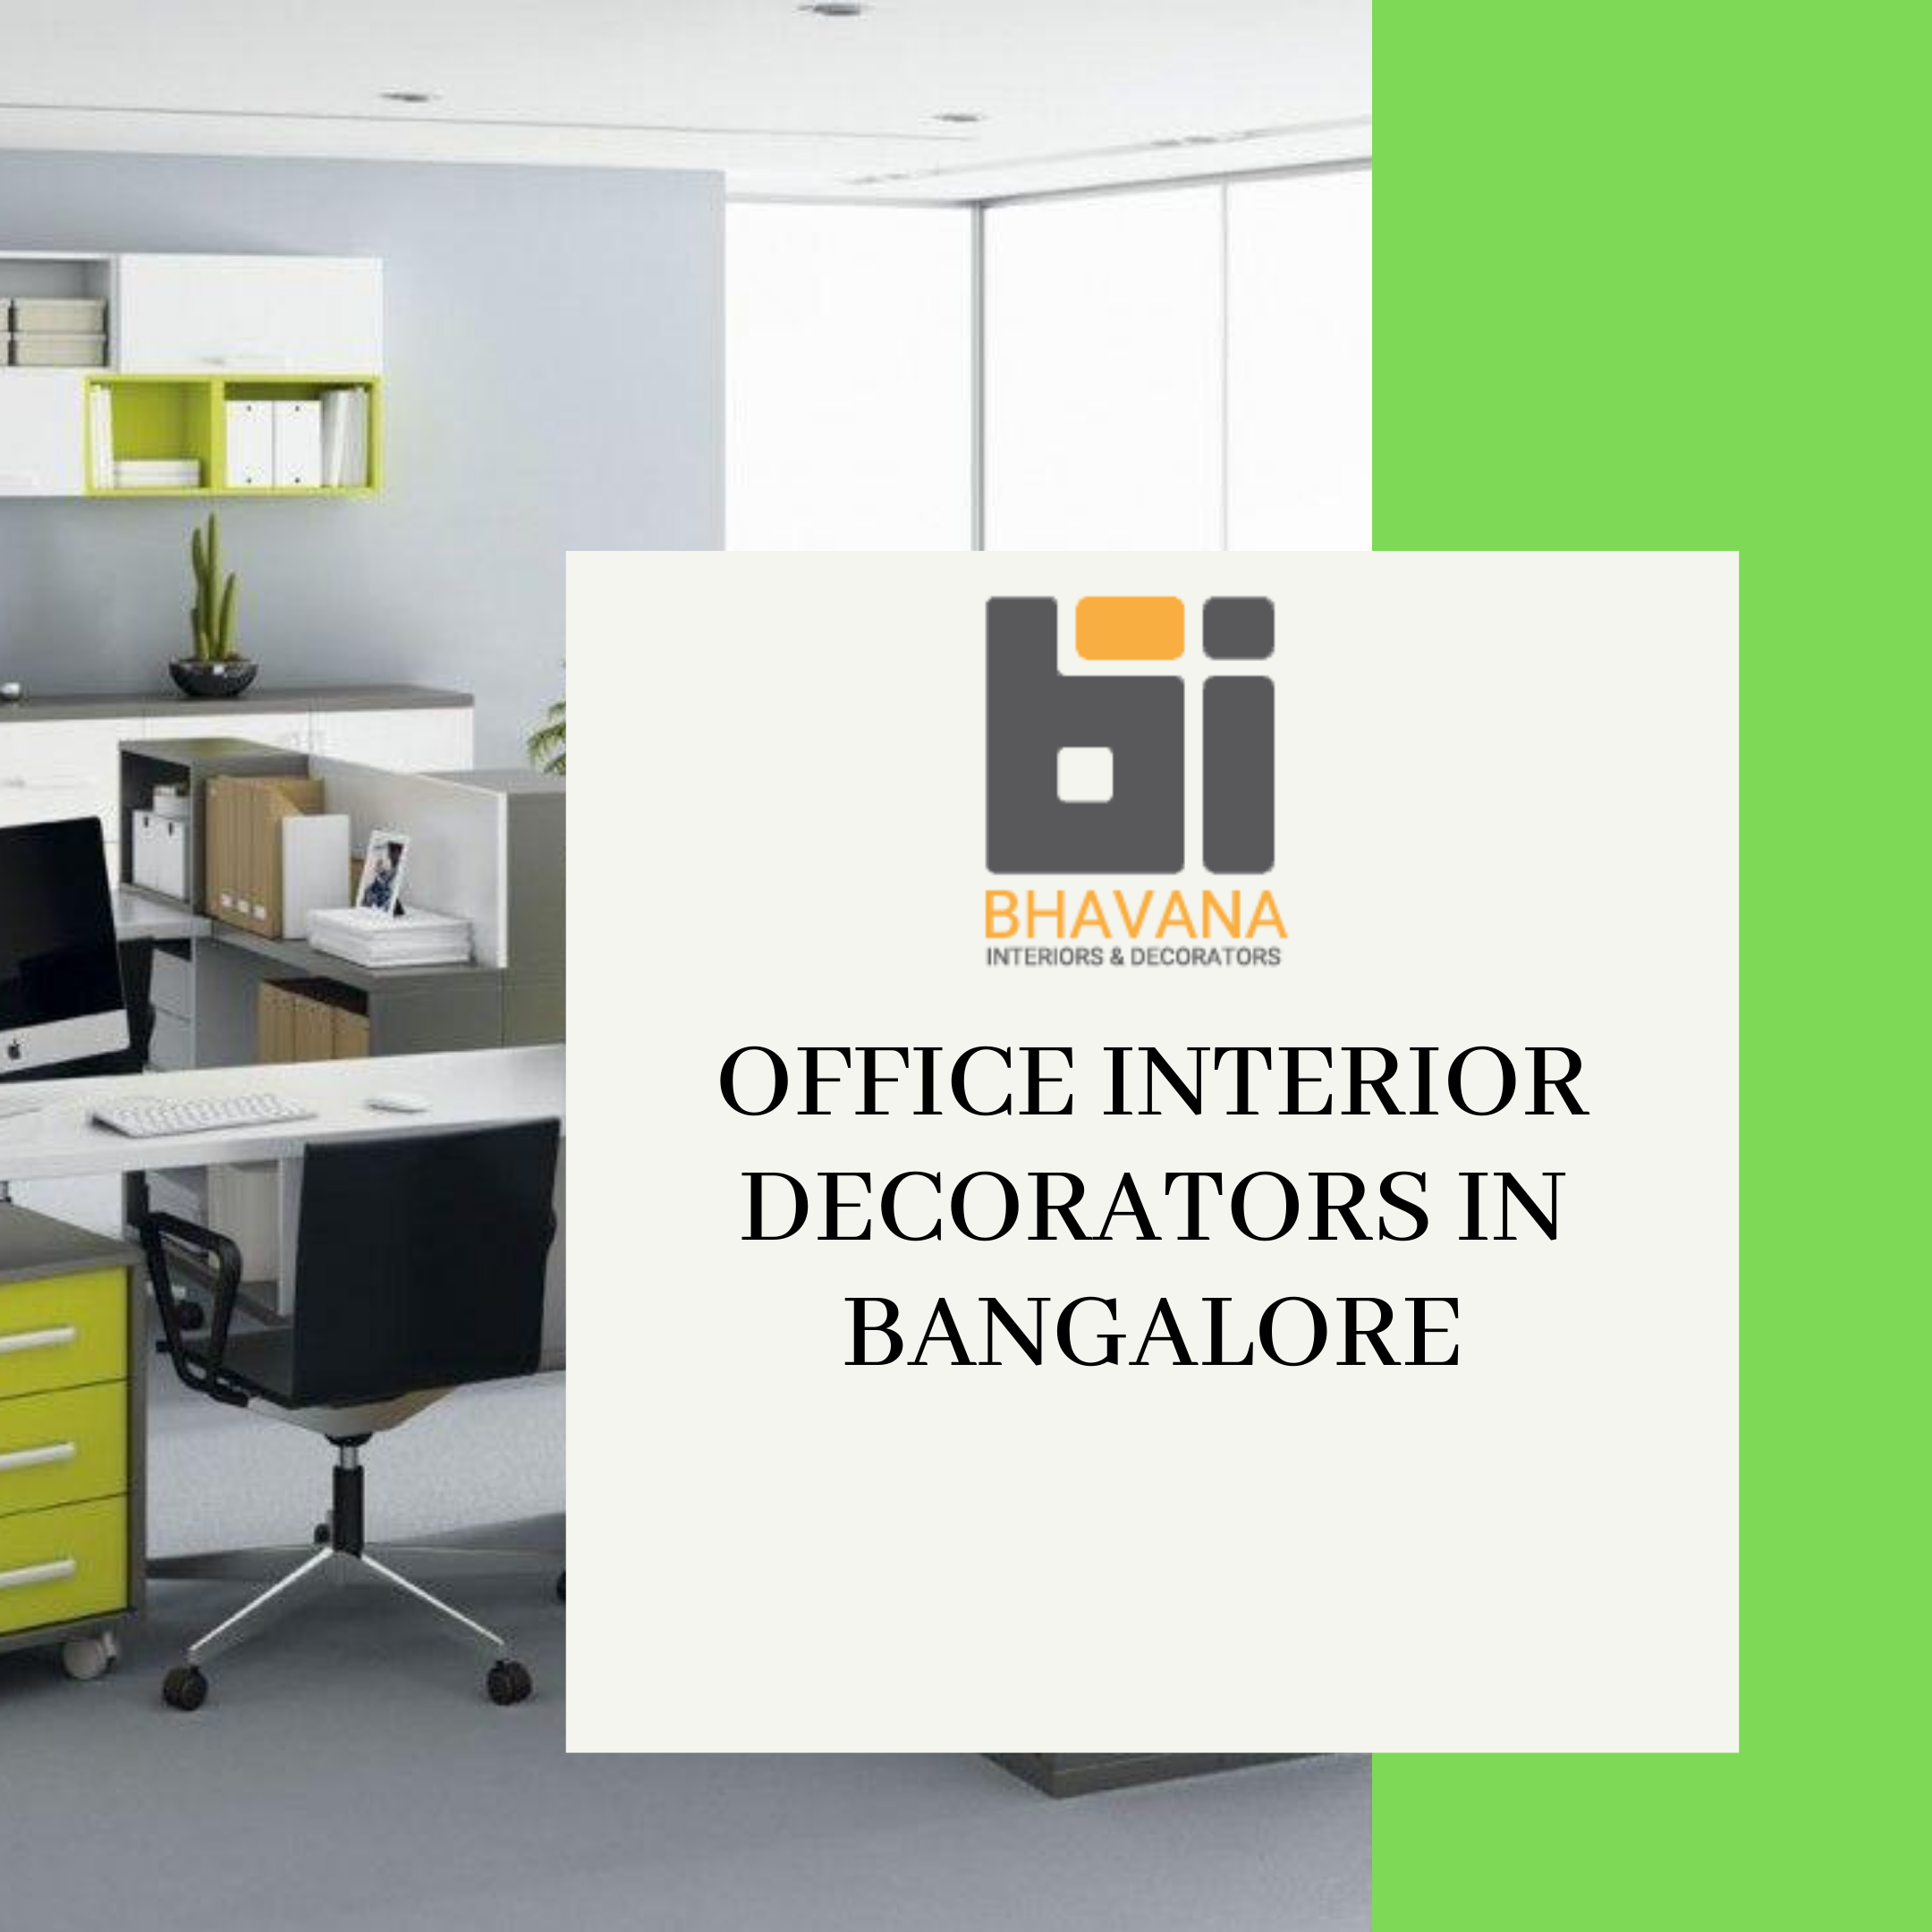 Increase the productivity of your Office with best Commercial Interior Designers.  We build creative & unique work spaces for your office. Get end to end Interior solutions for your office Today..!  Call Us:9902571049  #bhavanainterior #officeinterior #officedecor #designer #decorators #renovation #corporate #interiordesigner #budgetinterior